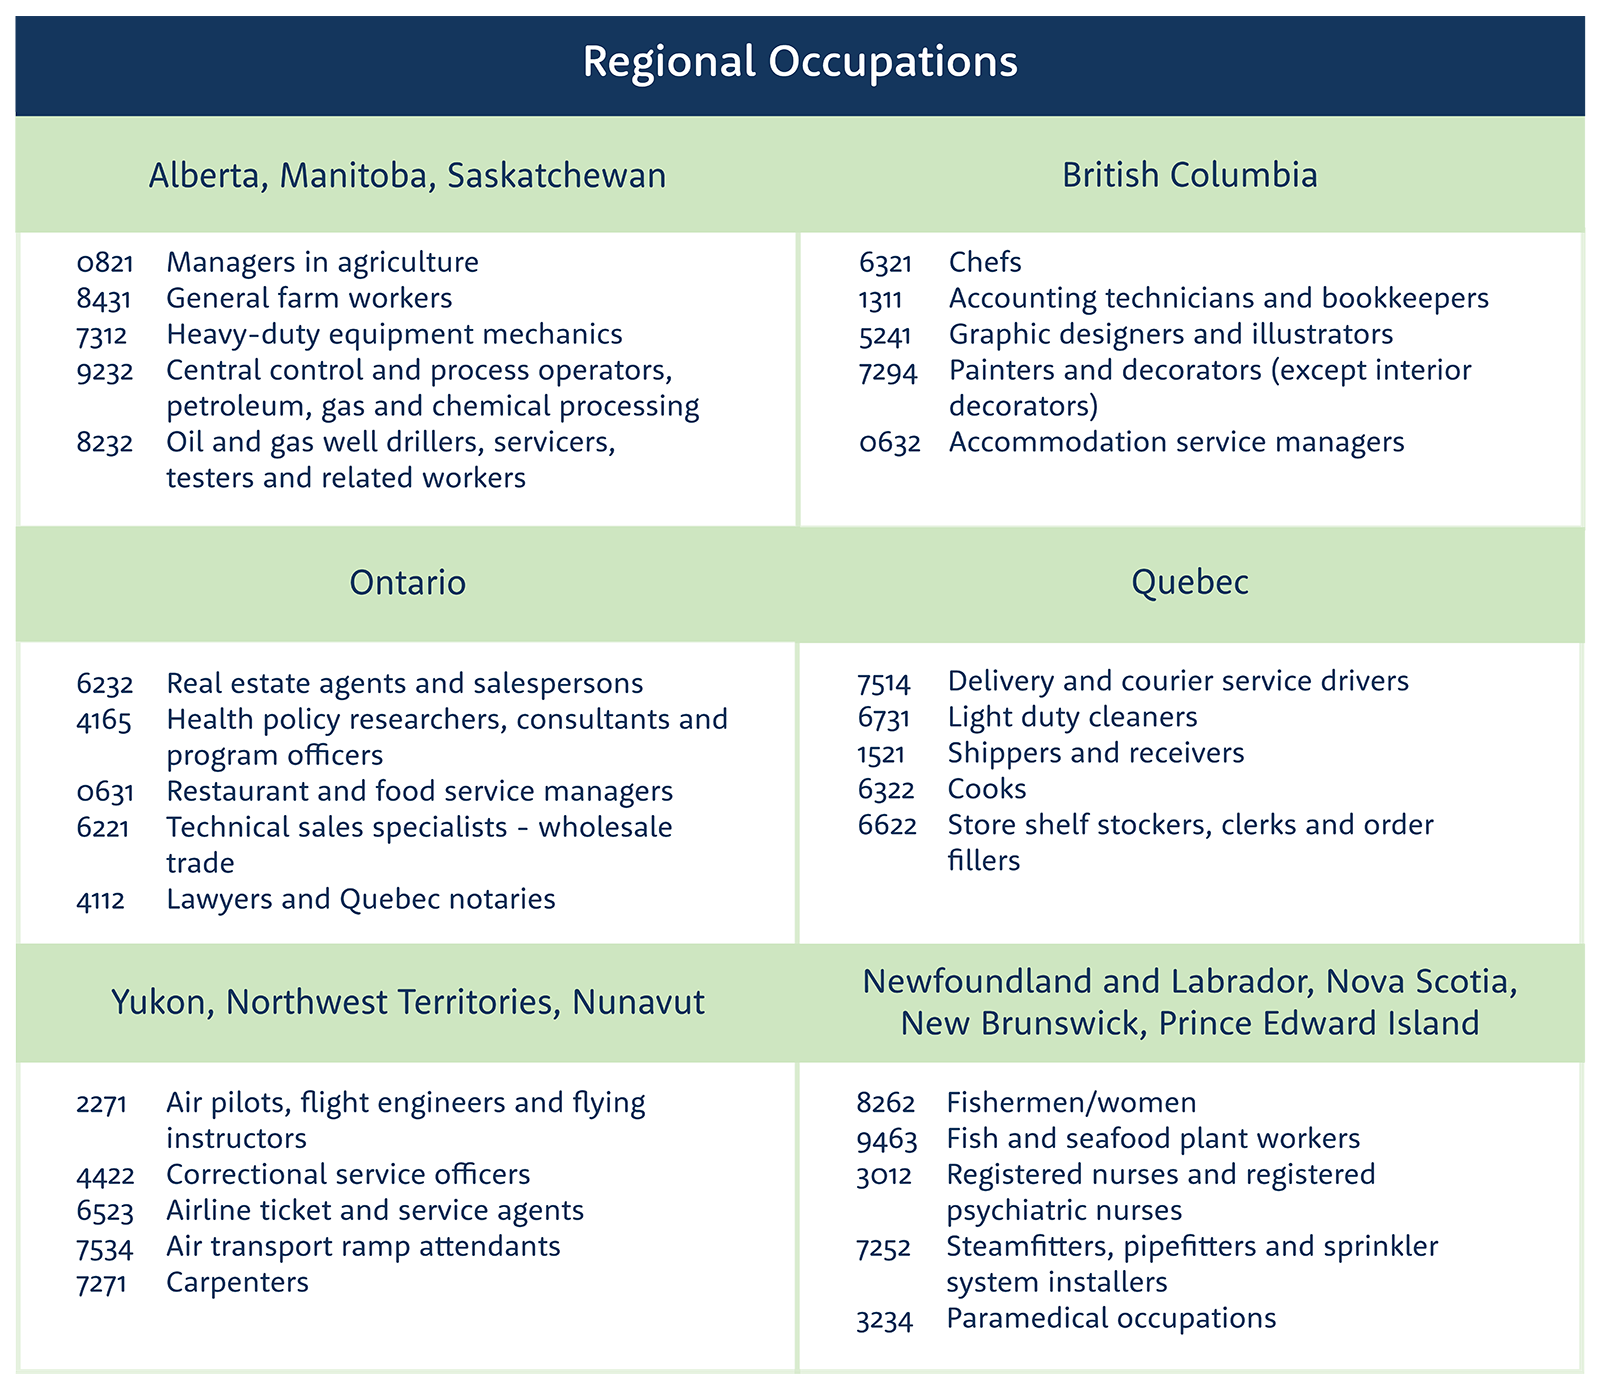 Table of regional occupations grouped by provinces and regions.